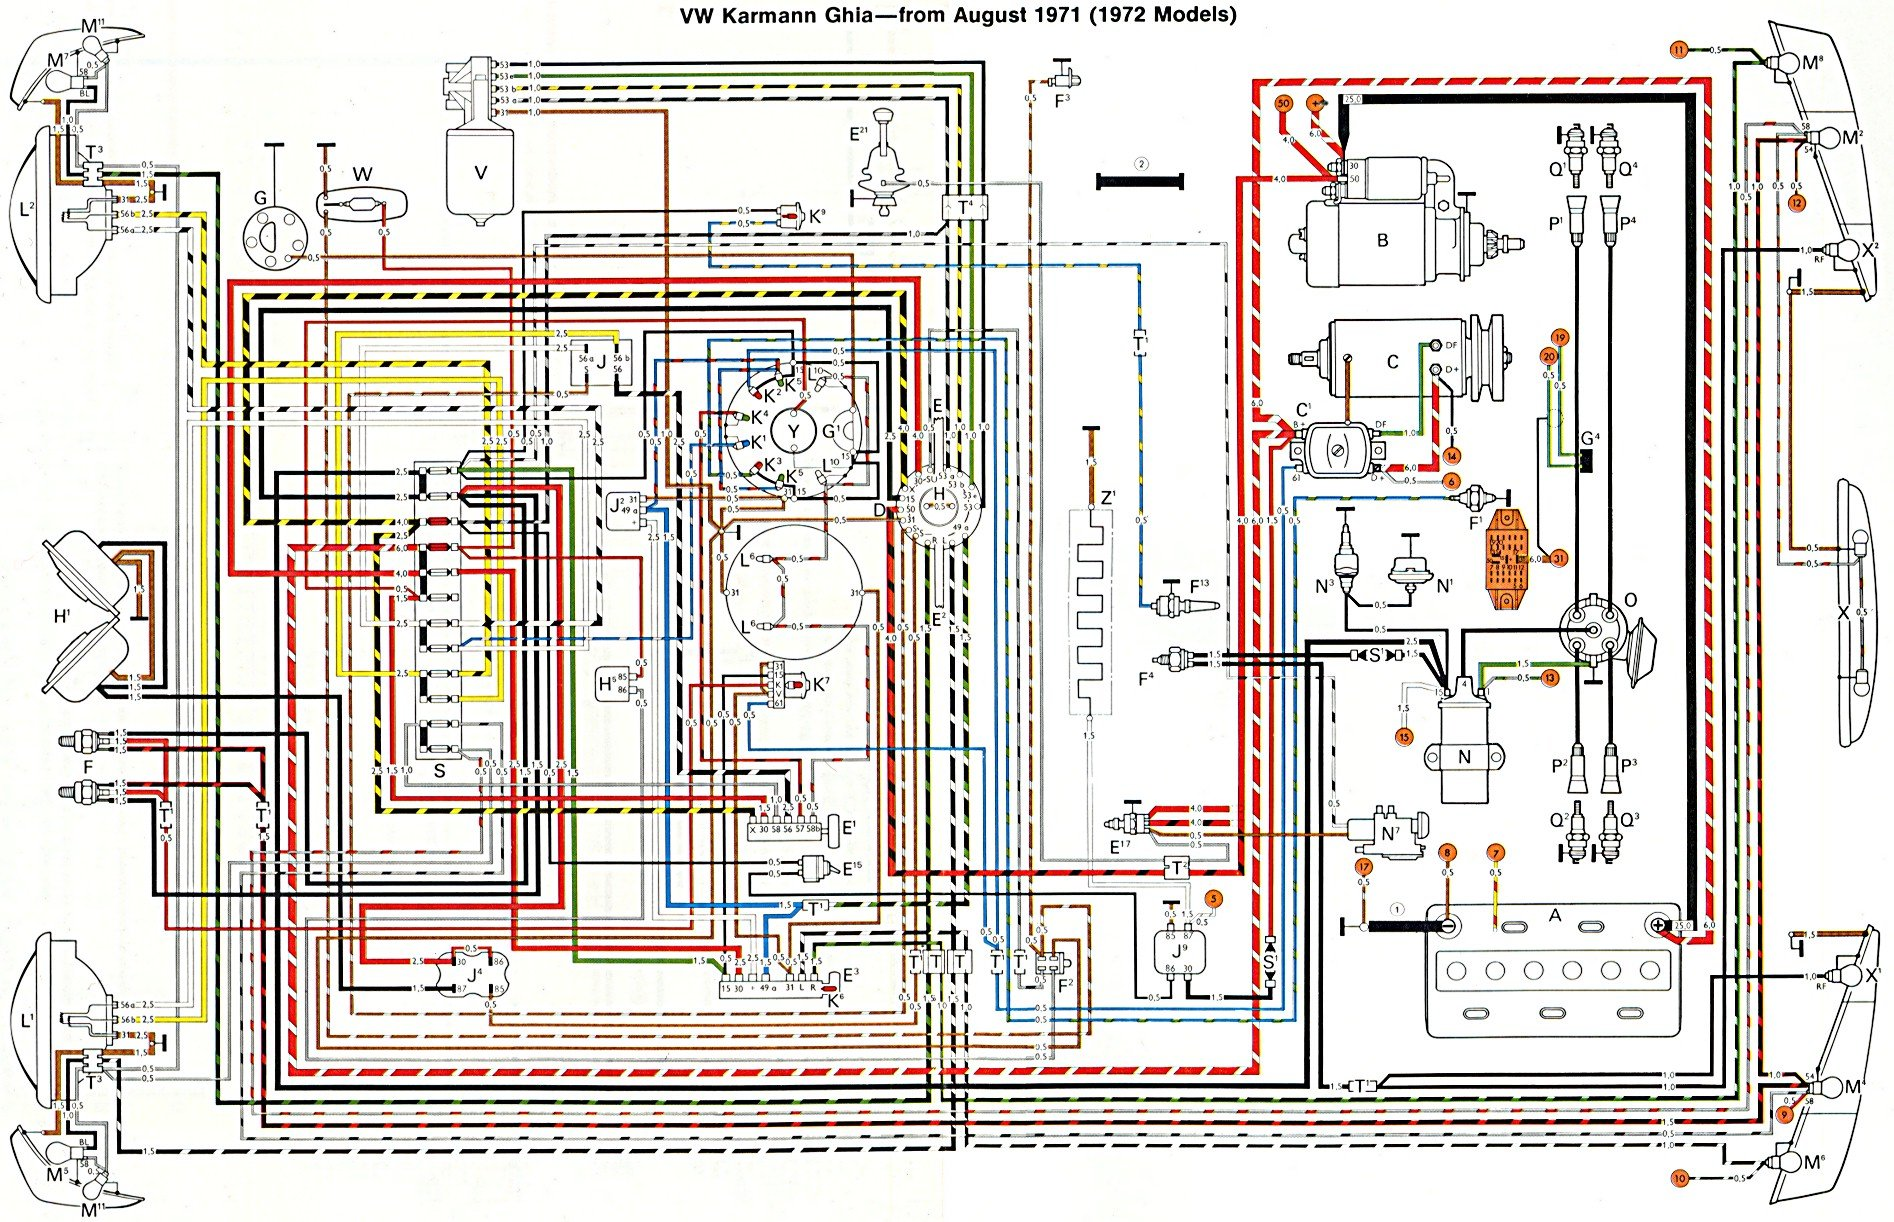 72ghia 1971 karmann ghia wiring diagram karmann ghia wiring harness Wiring Harness Diagram at gsmportal.co